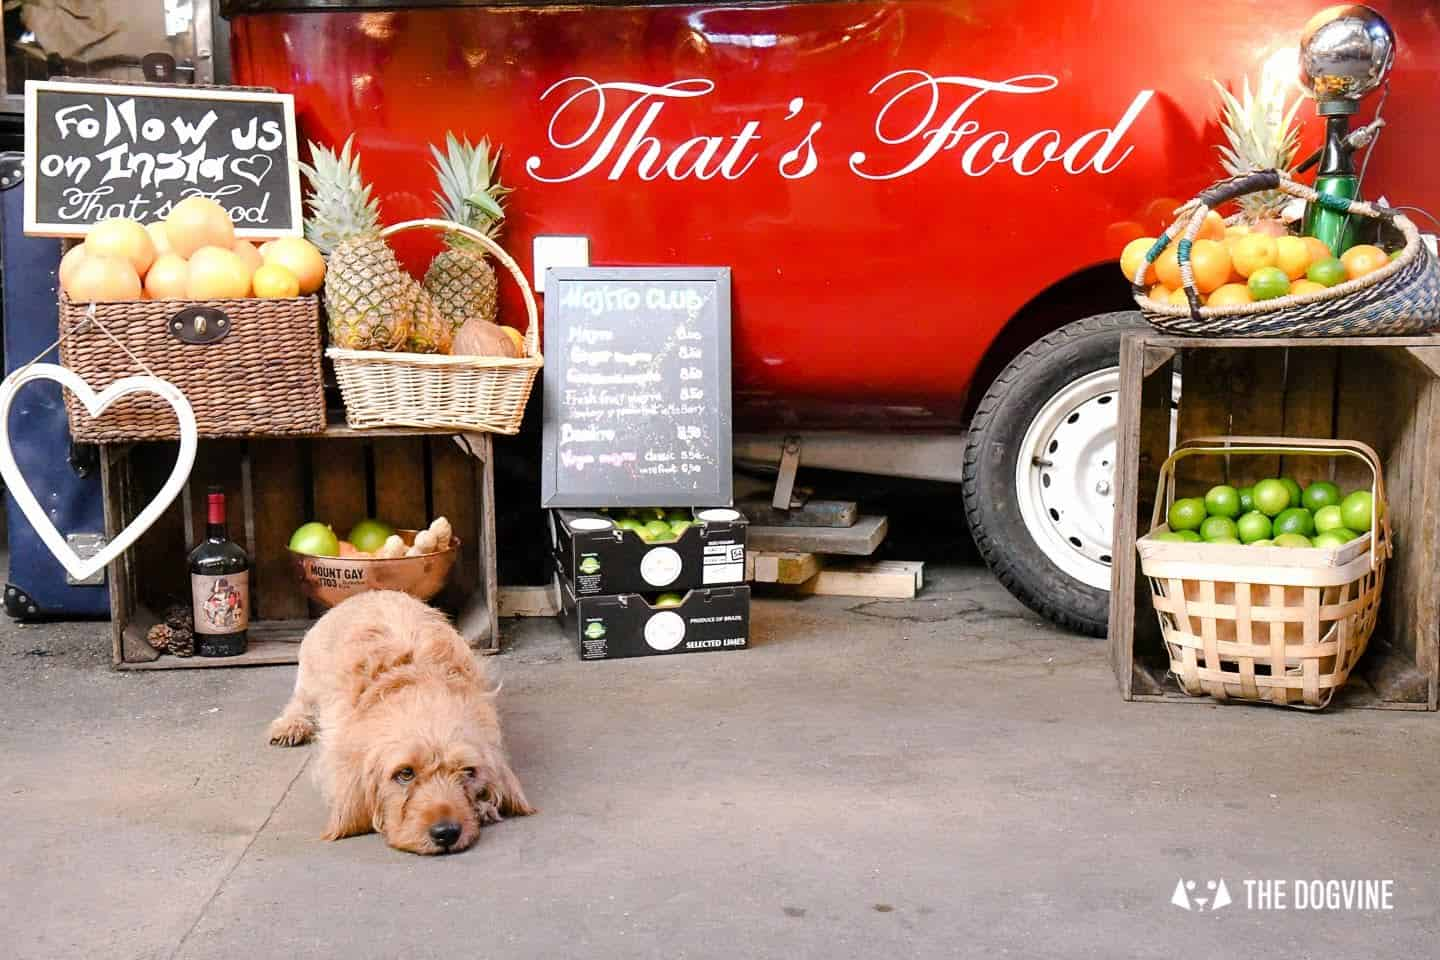 My Dog Friendly London By Amber The Basset Fauve De Bretagne - Mercato Metropolitano 9